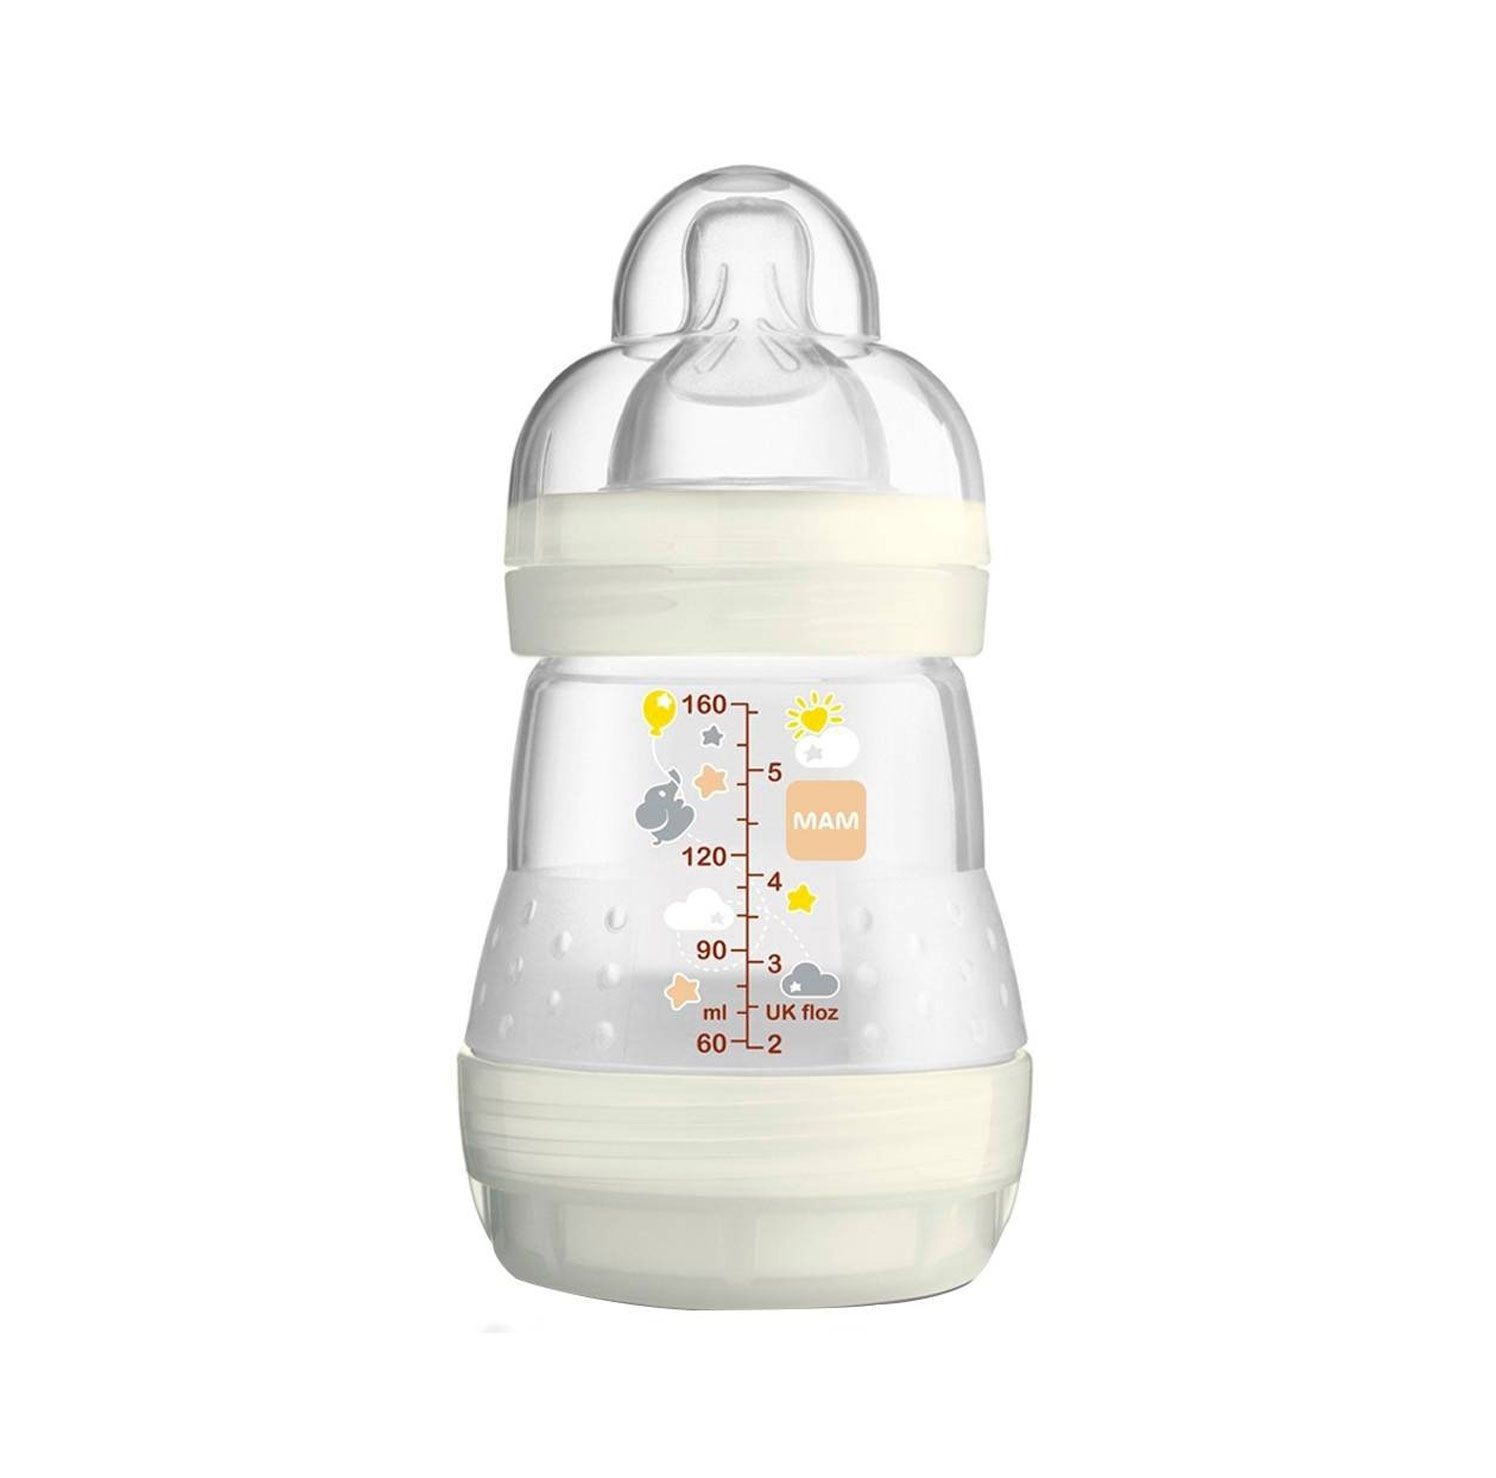 MAMADEIRA EASY FIRST BOTTLE MAM REF:4652 160 ML 0M+